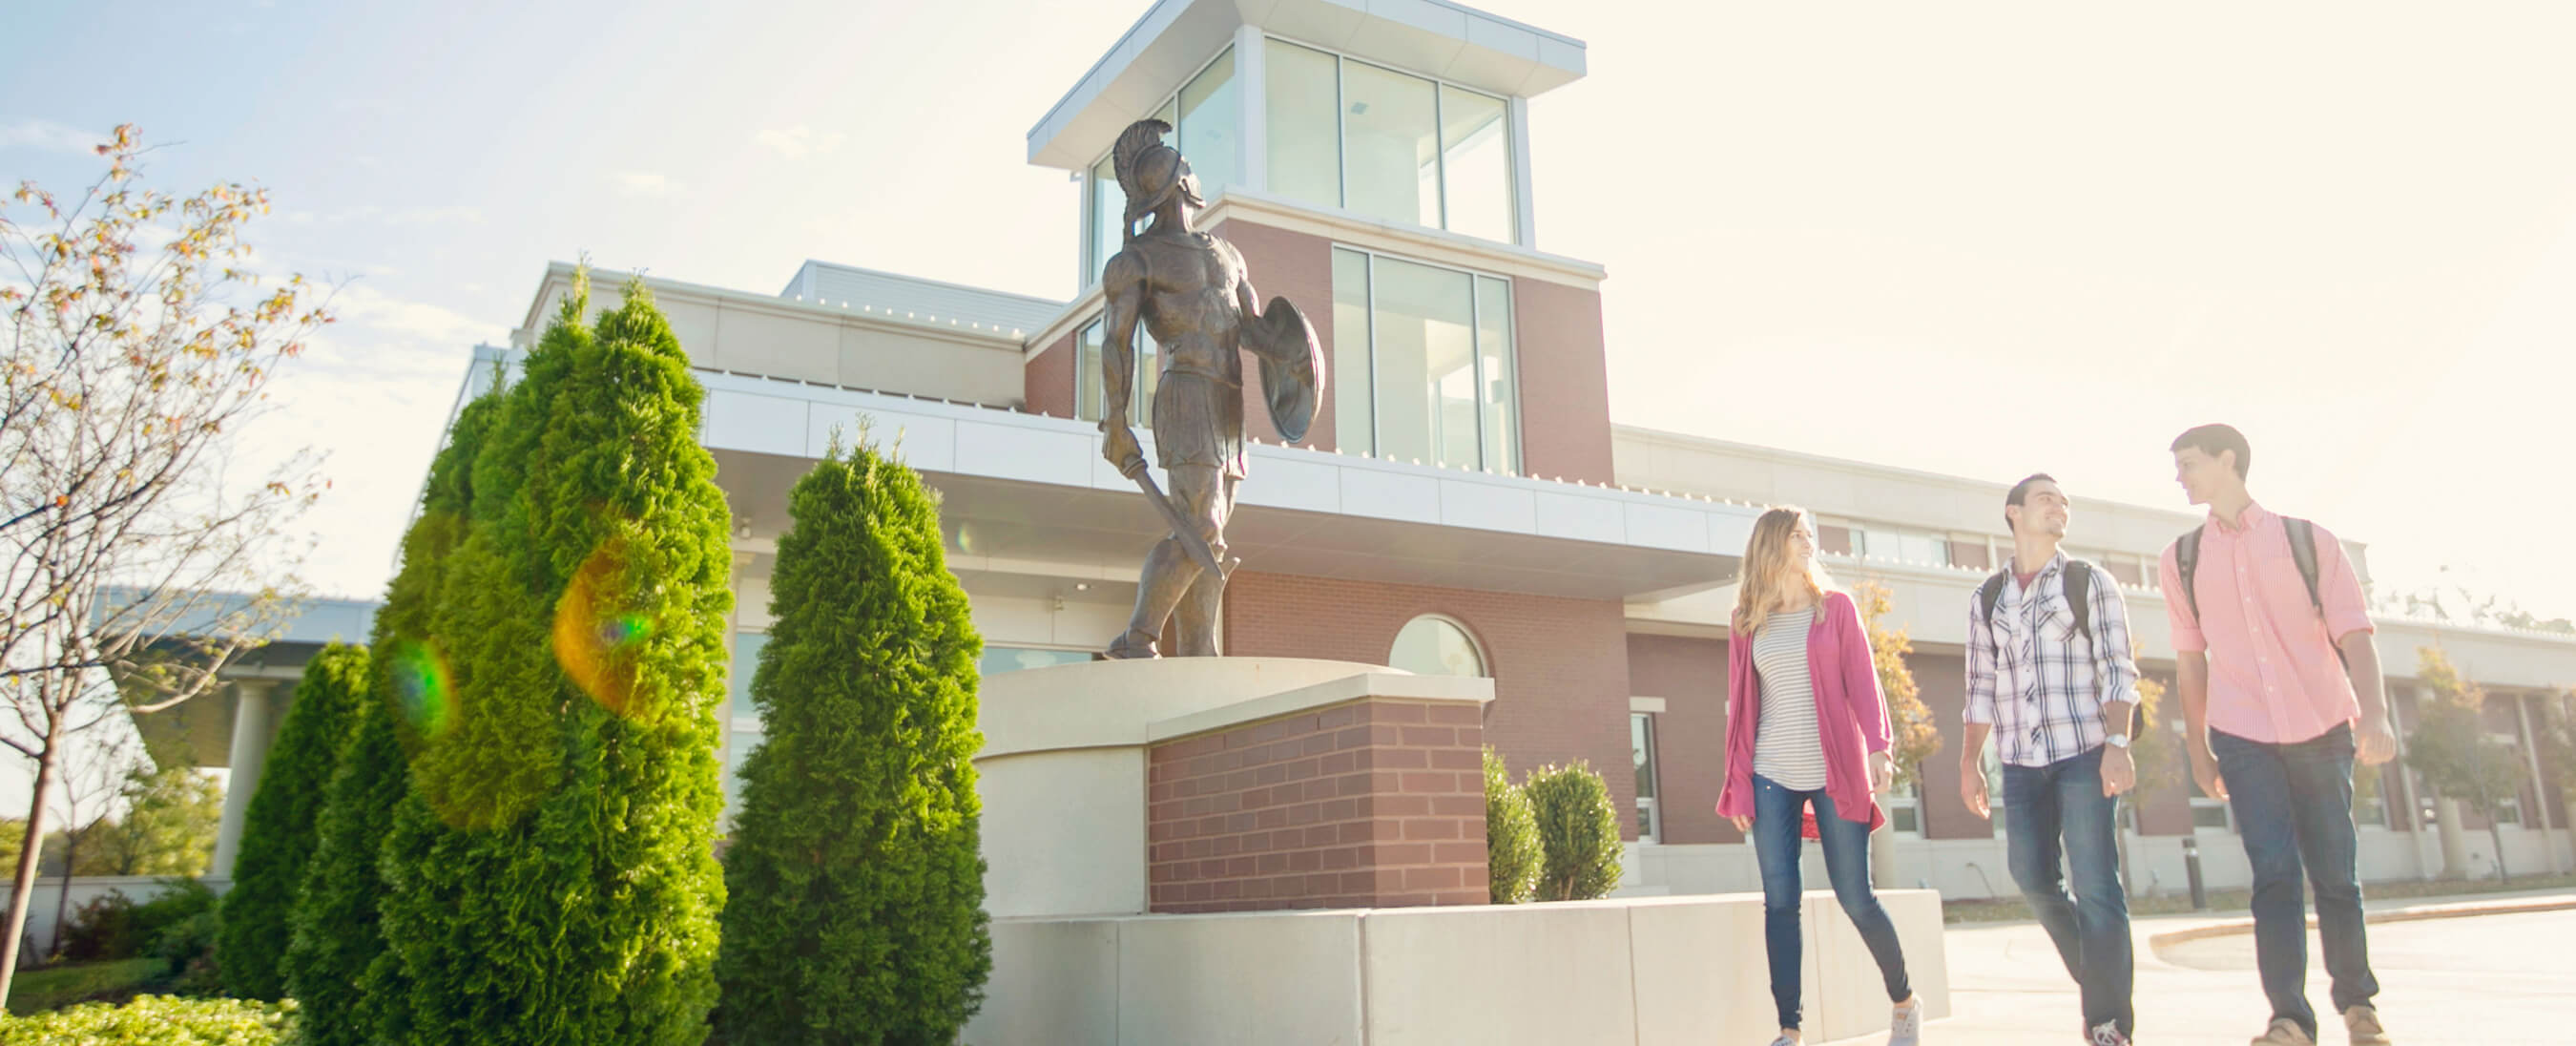 Students walking past MBU's Spartan statue on a bright day